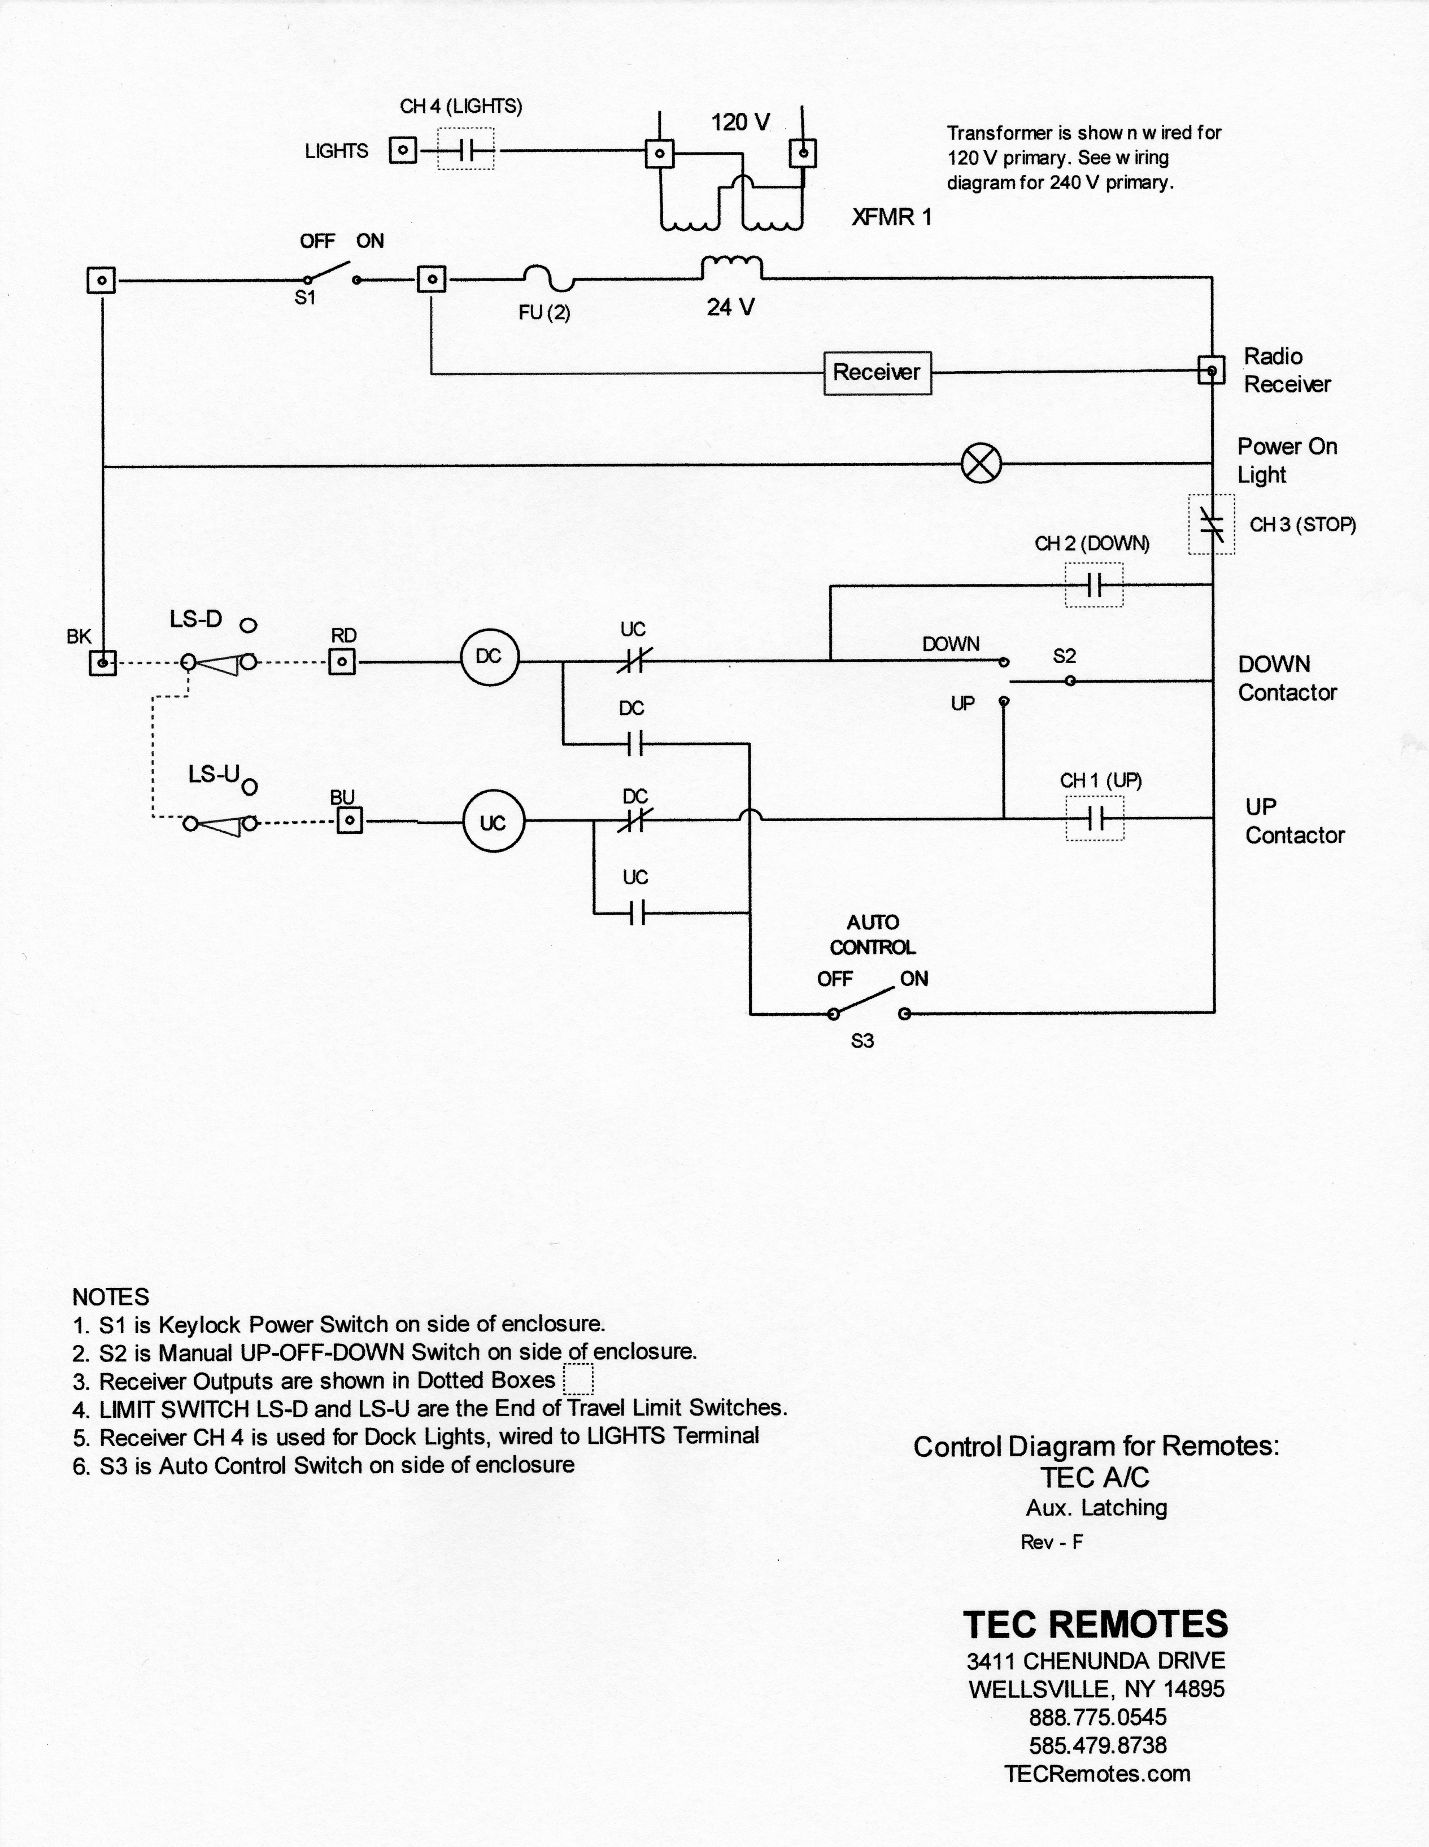 awesome 3 way light circuit wiring diagram vignette best images rh oursweetbakeshop info